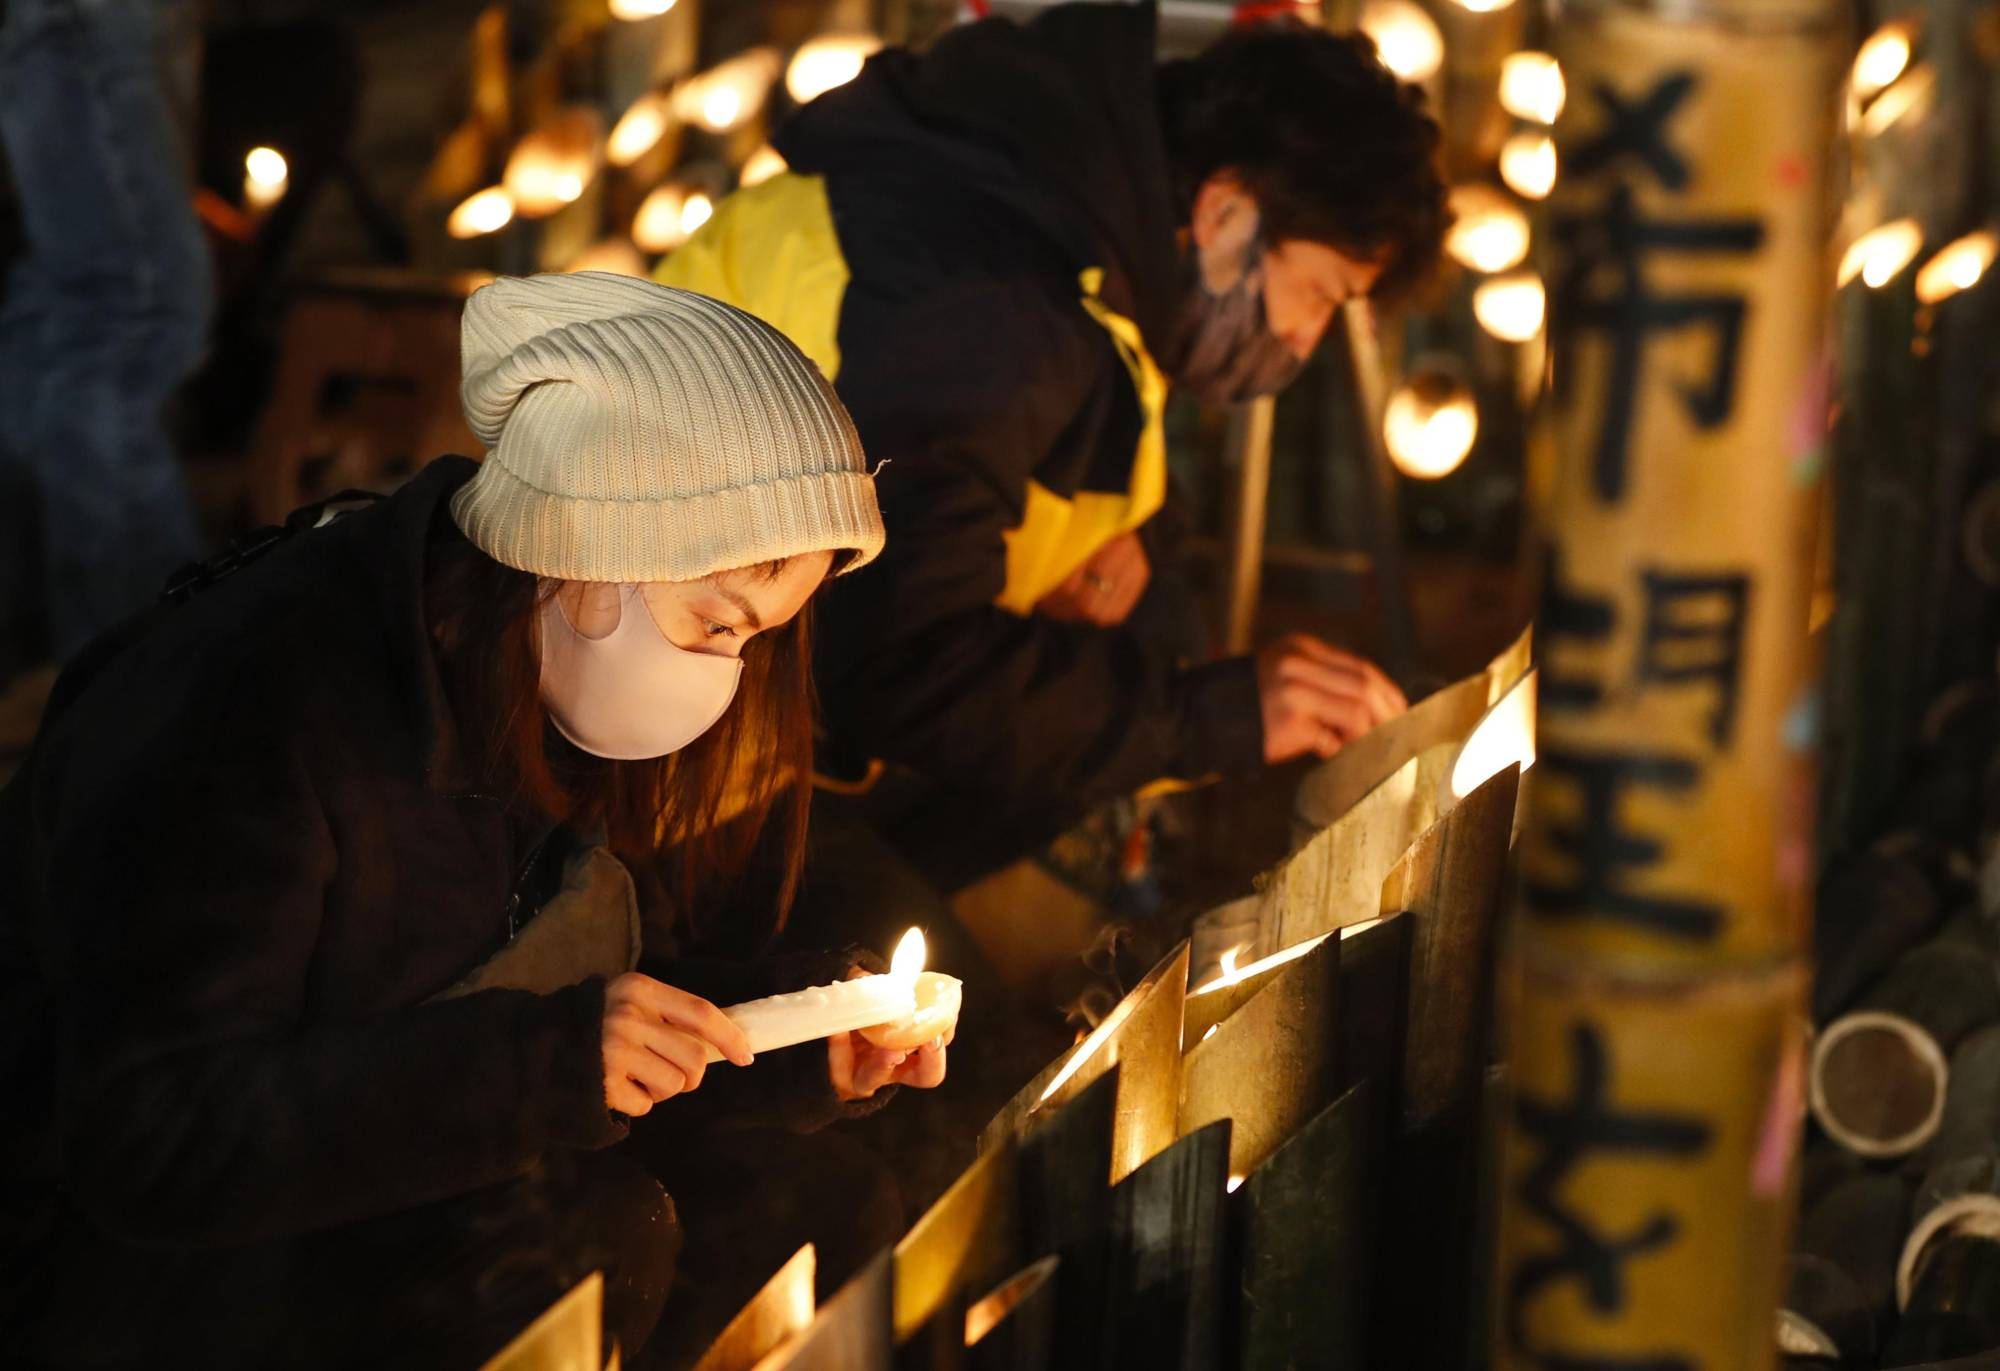 Participants prepare lanterns for a memorial event to mark the 26th anniversary of the Great Hanshin Earthquake in Kobe on Sunday. | KYODO